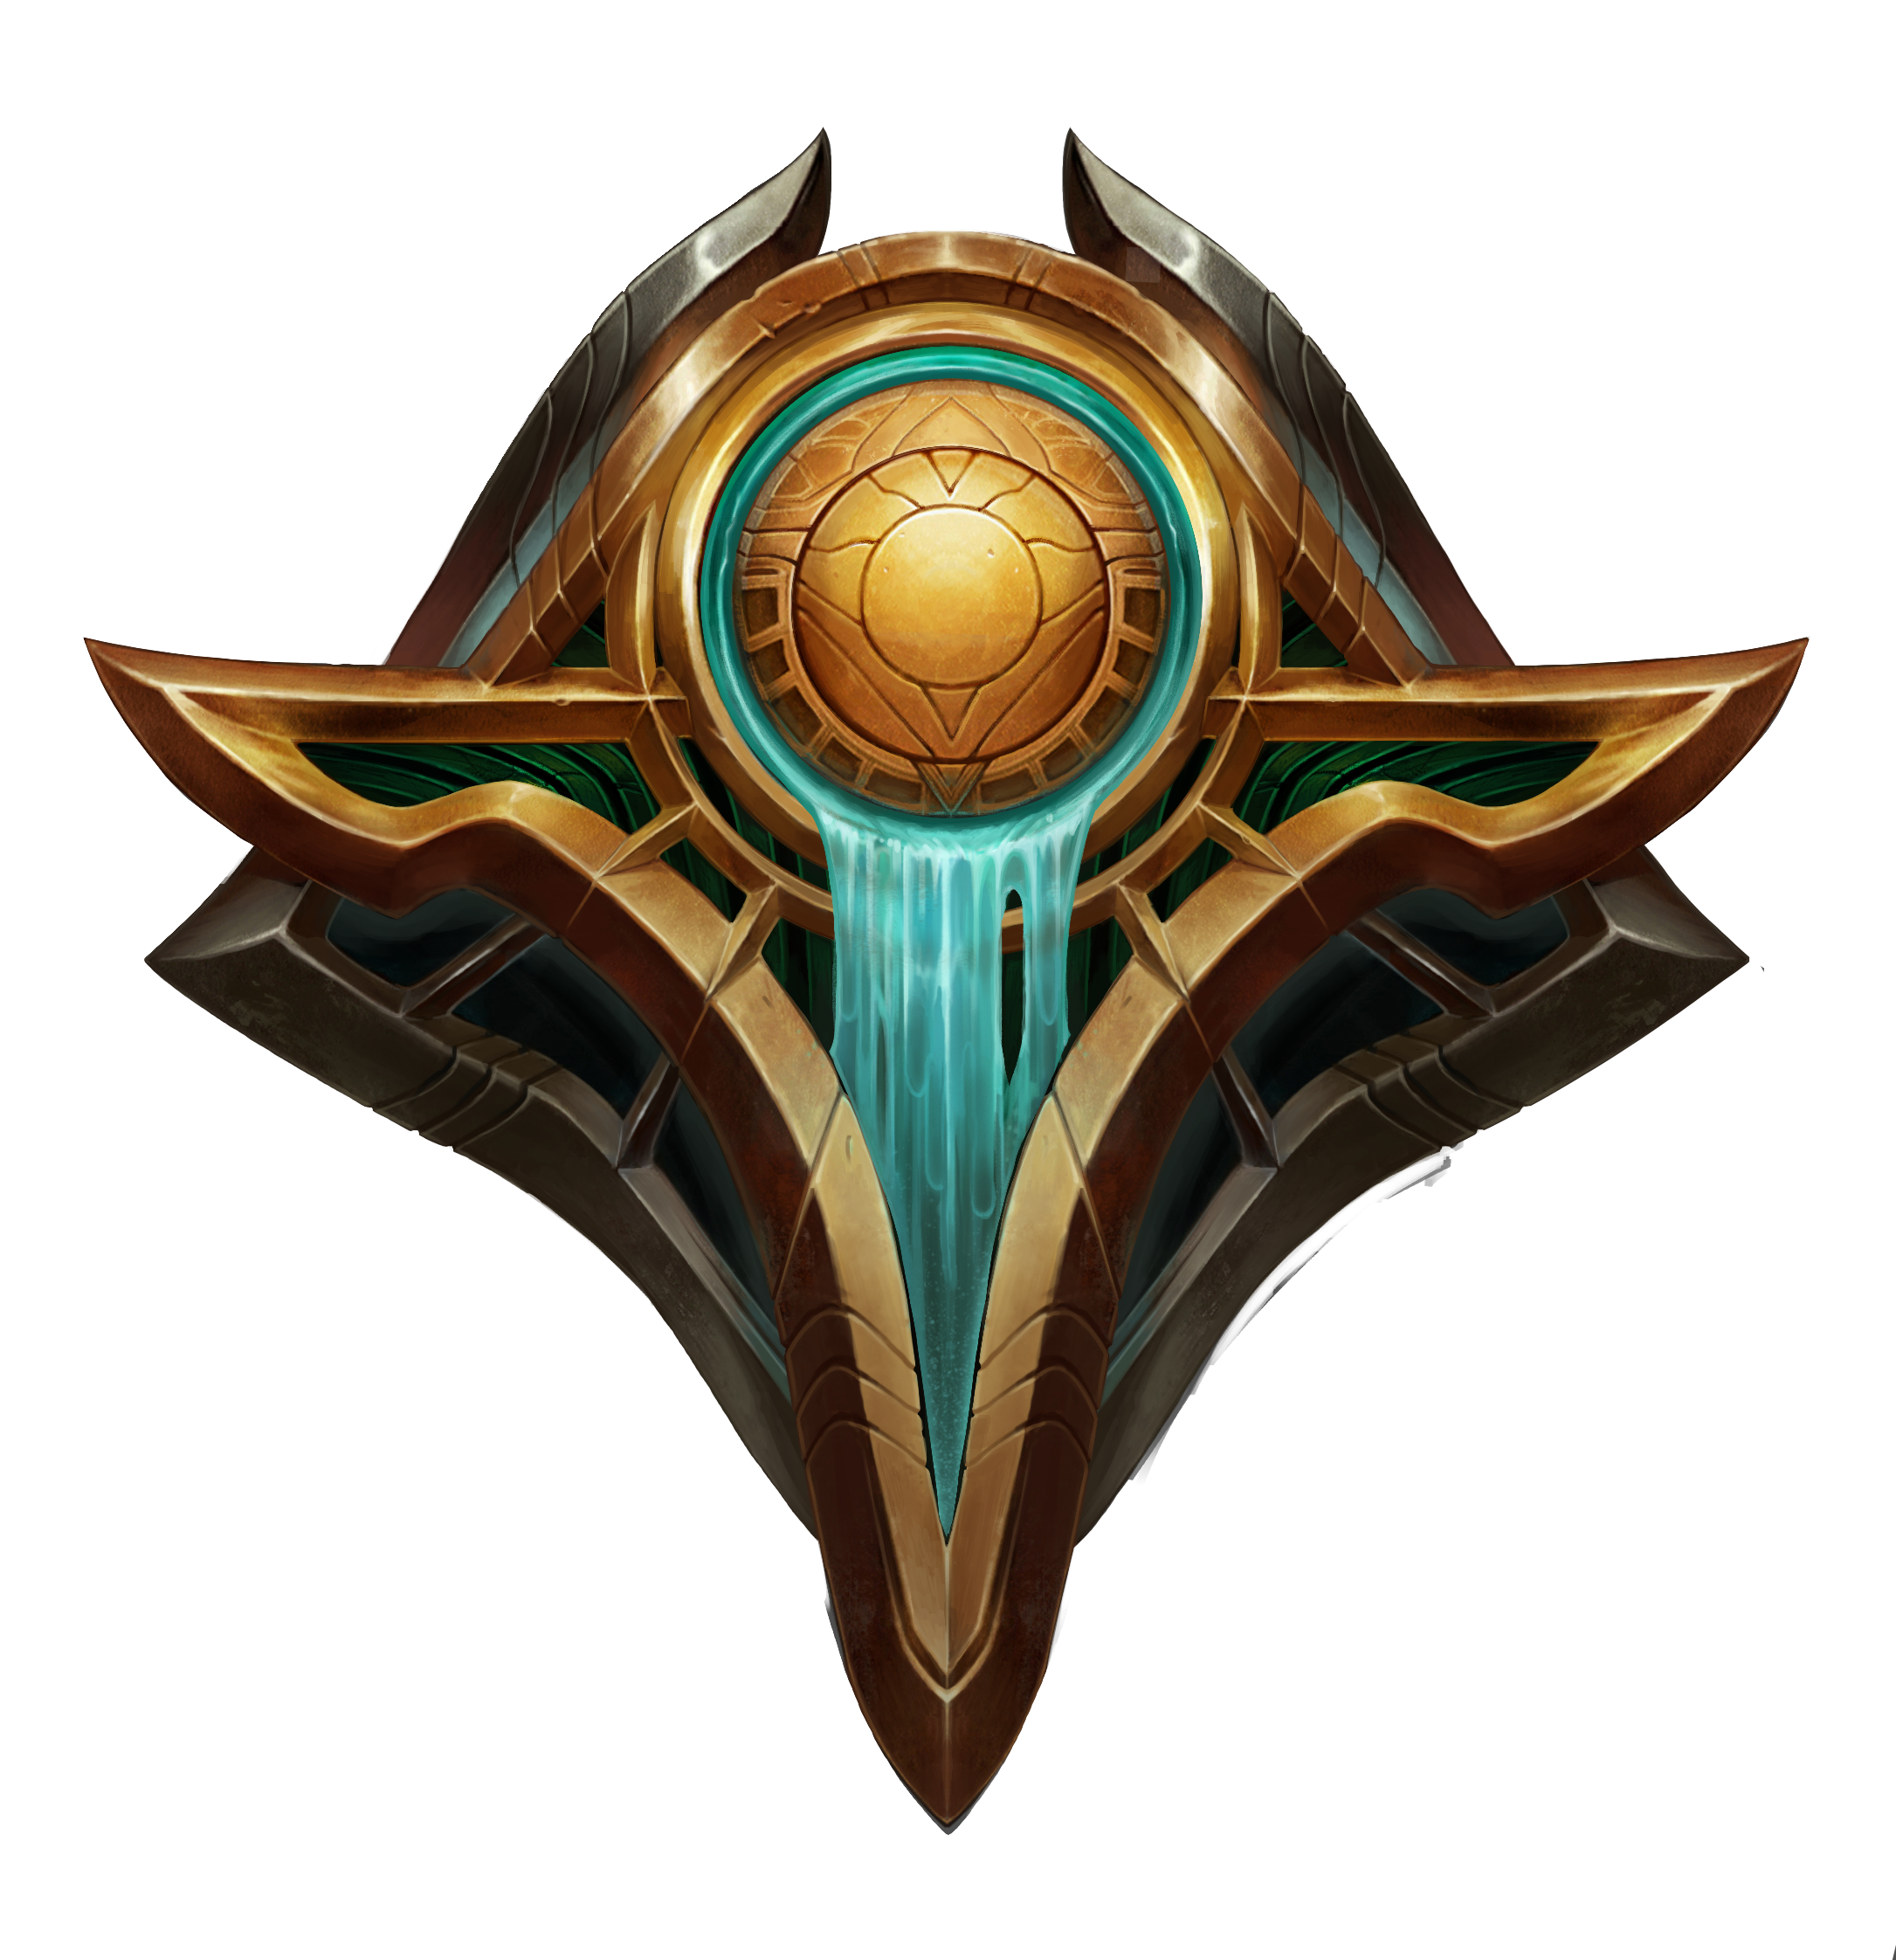 Shurima_Crest.png